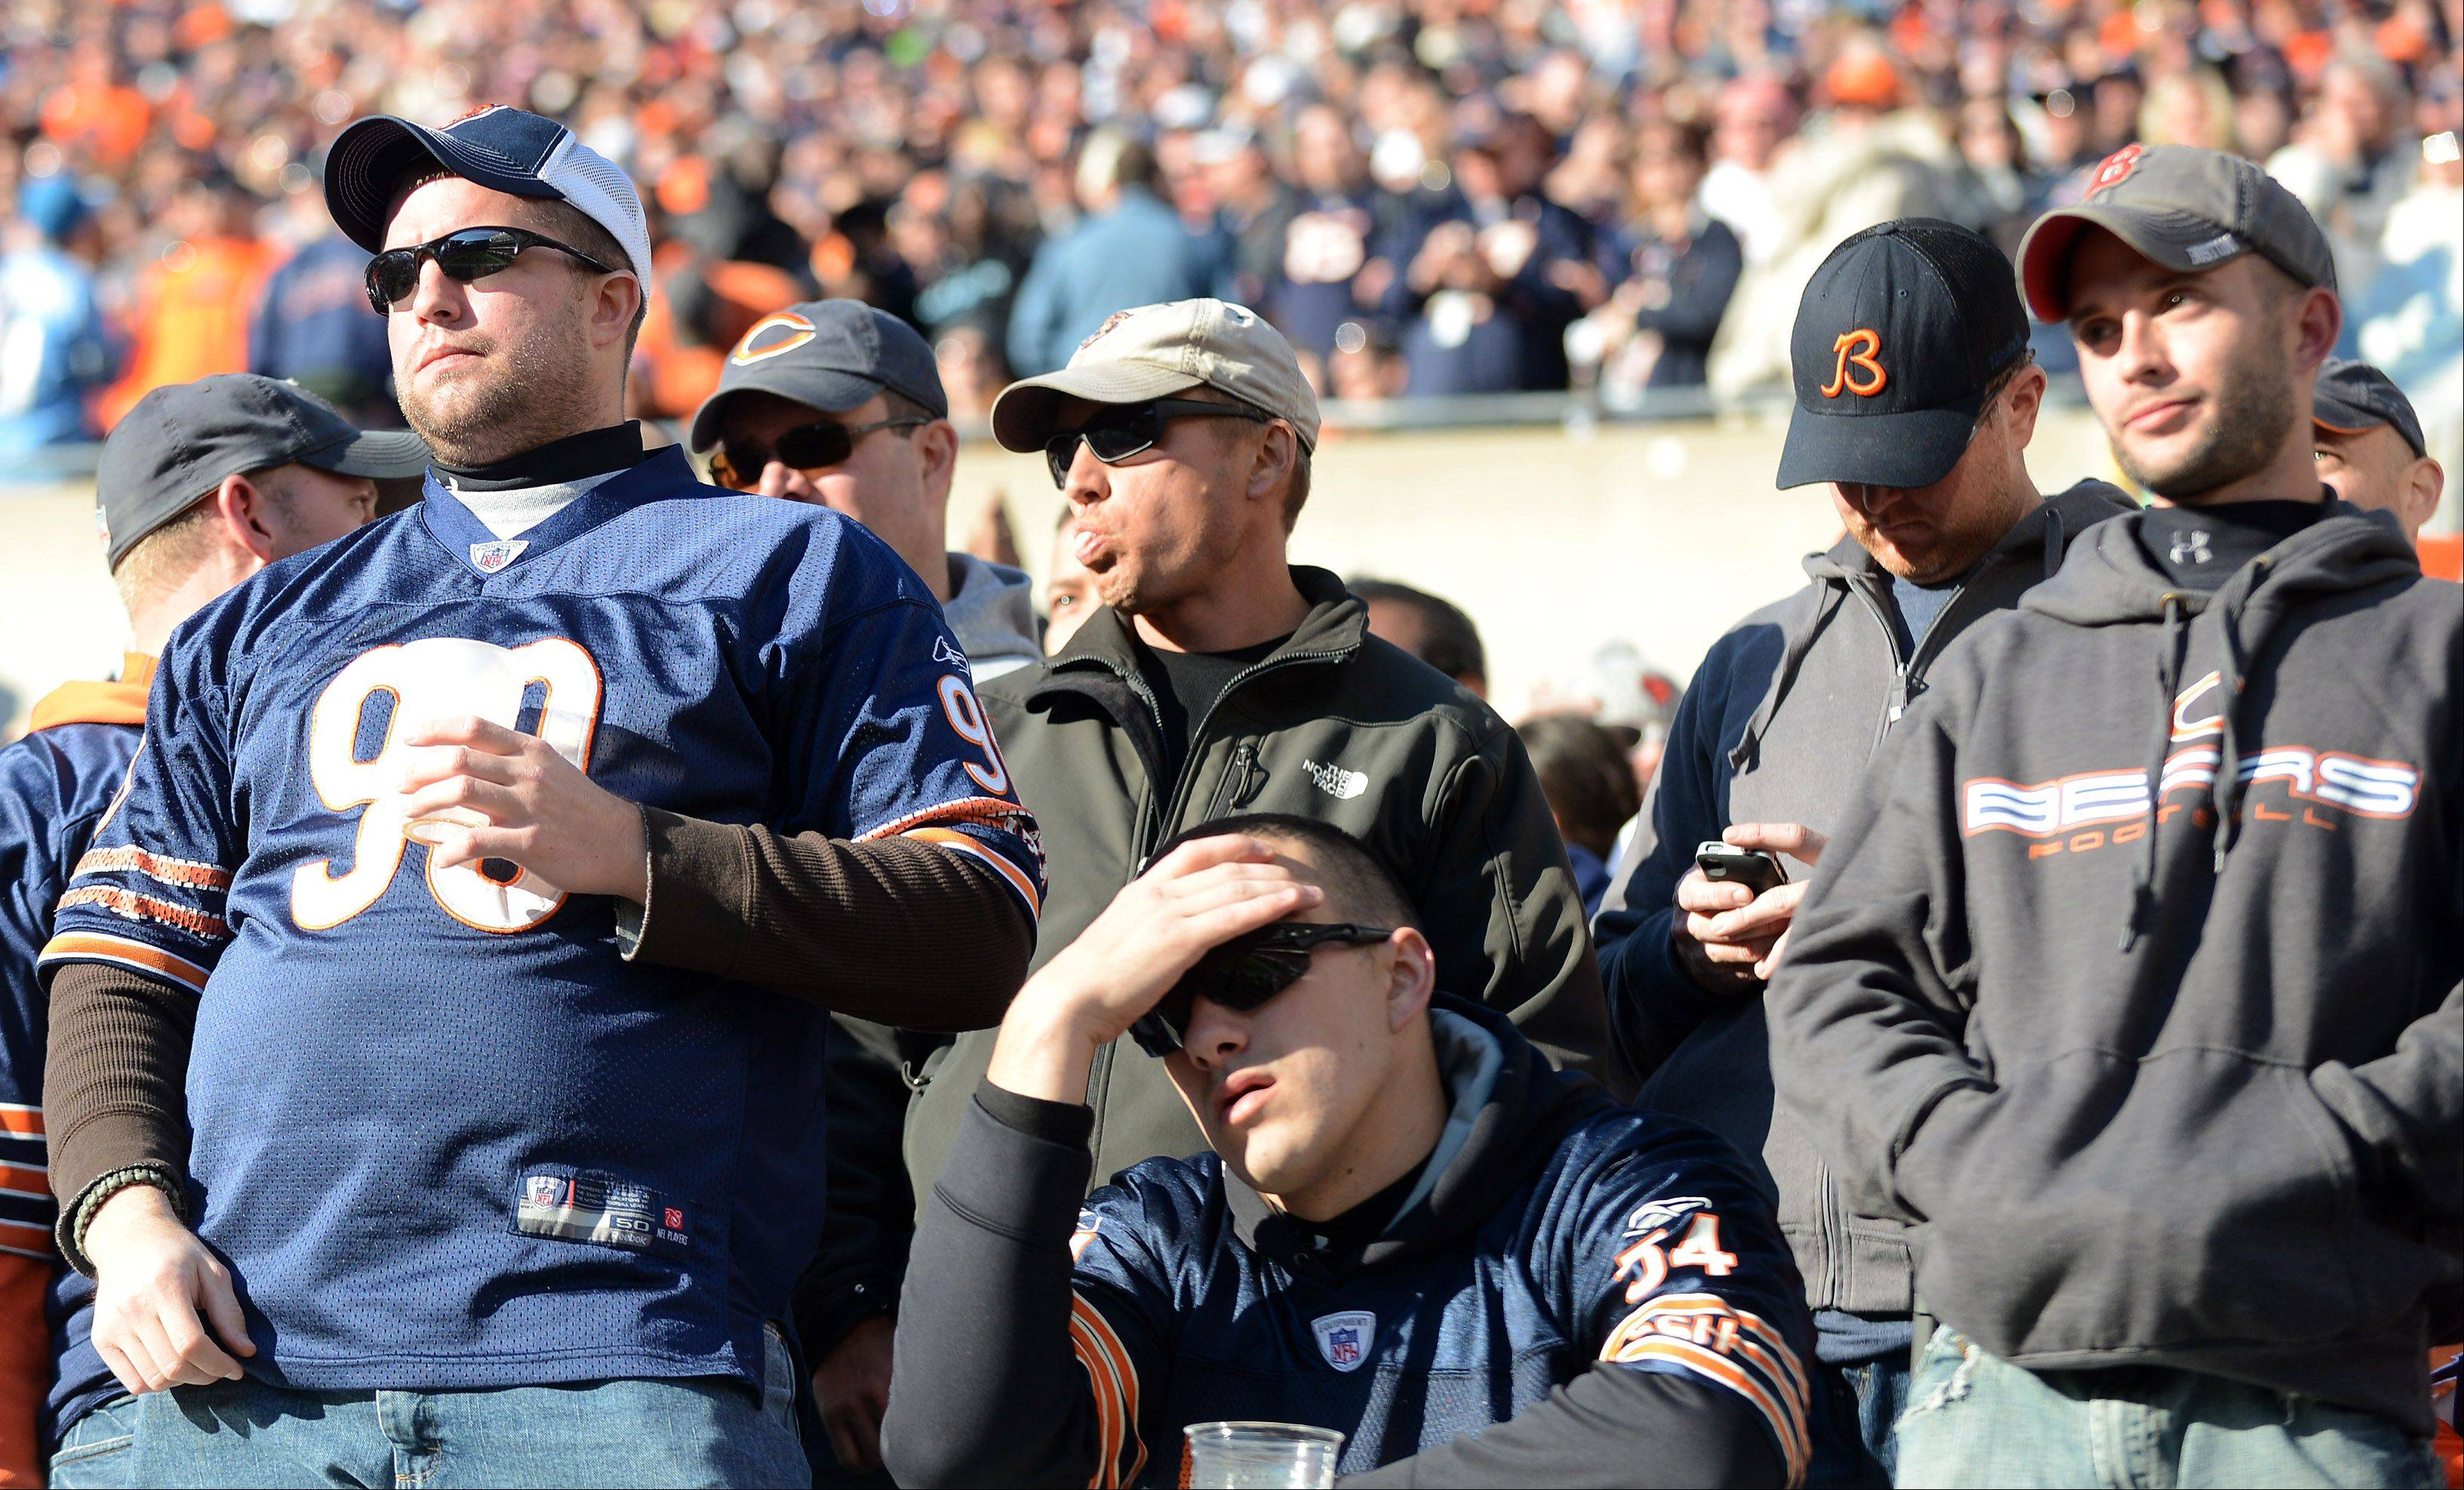 Bears fans react as things start to look grim in the fourth quarter during Sunday's game in Chicago.